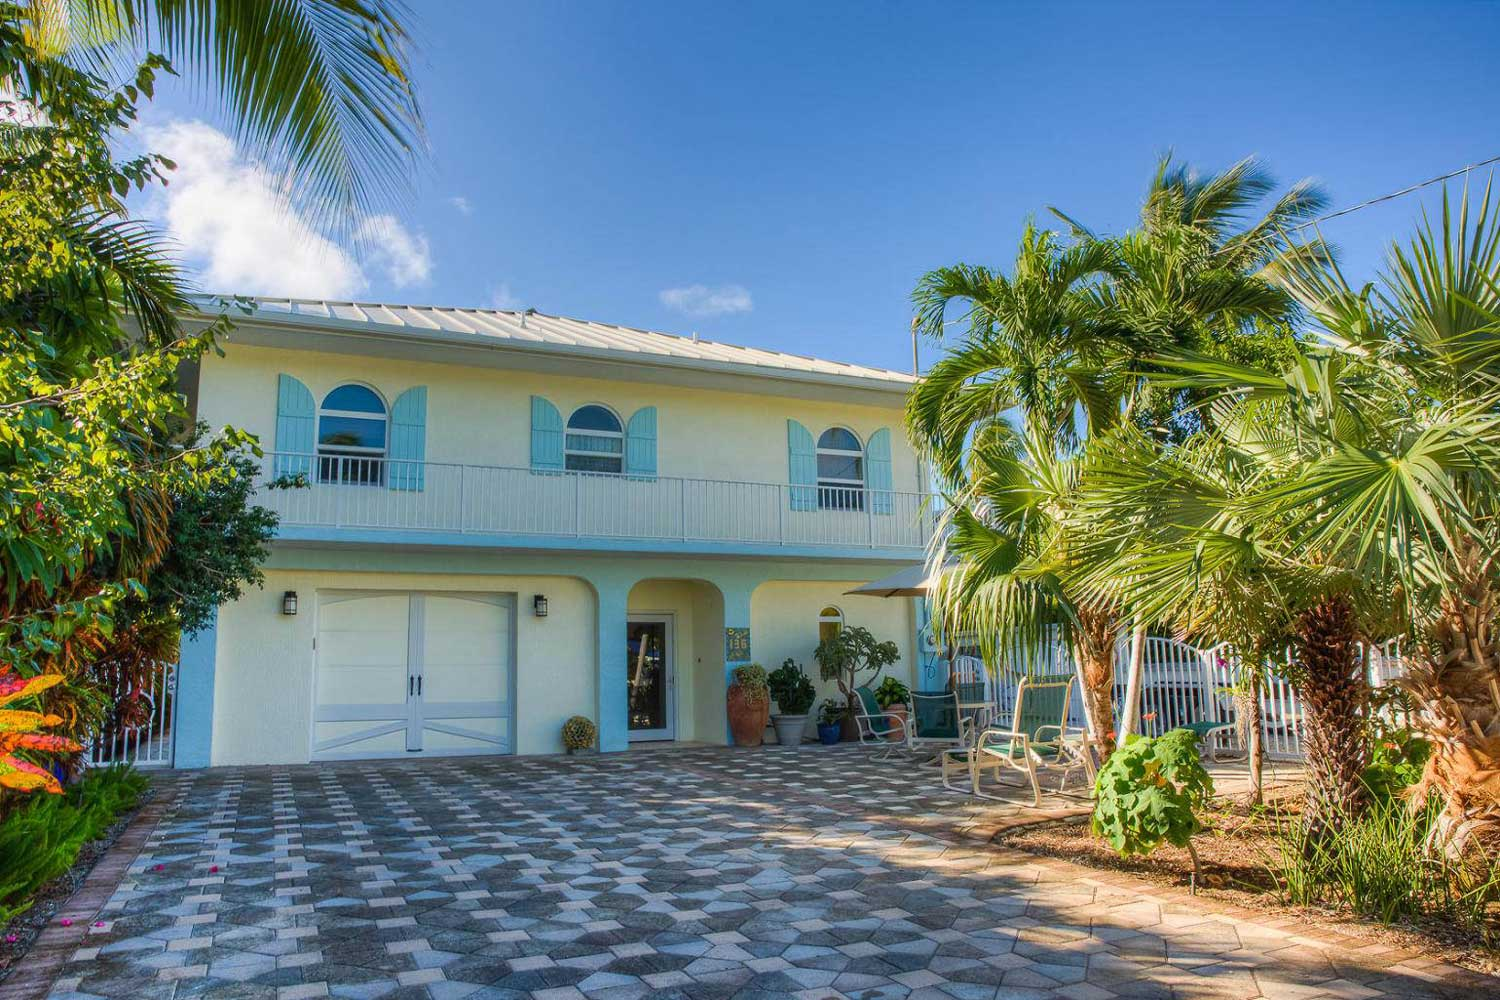 <b>Plantation Key, Florida</b><br/><i>4 Bedrooms, 2,380 sq. ft.</i><br/>Oceanside home in the Florida Keys